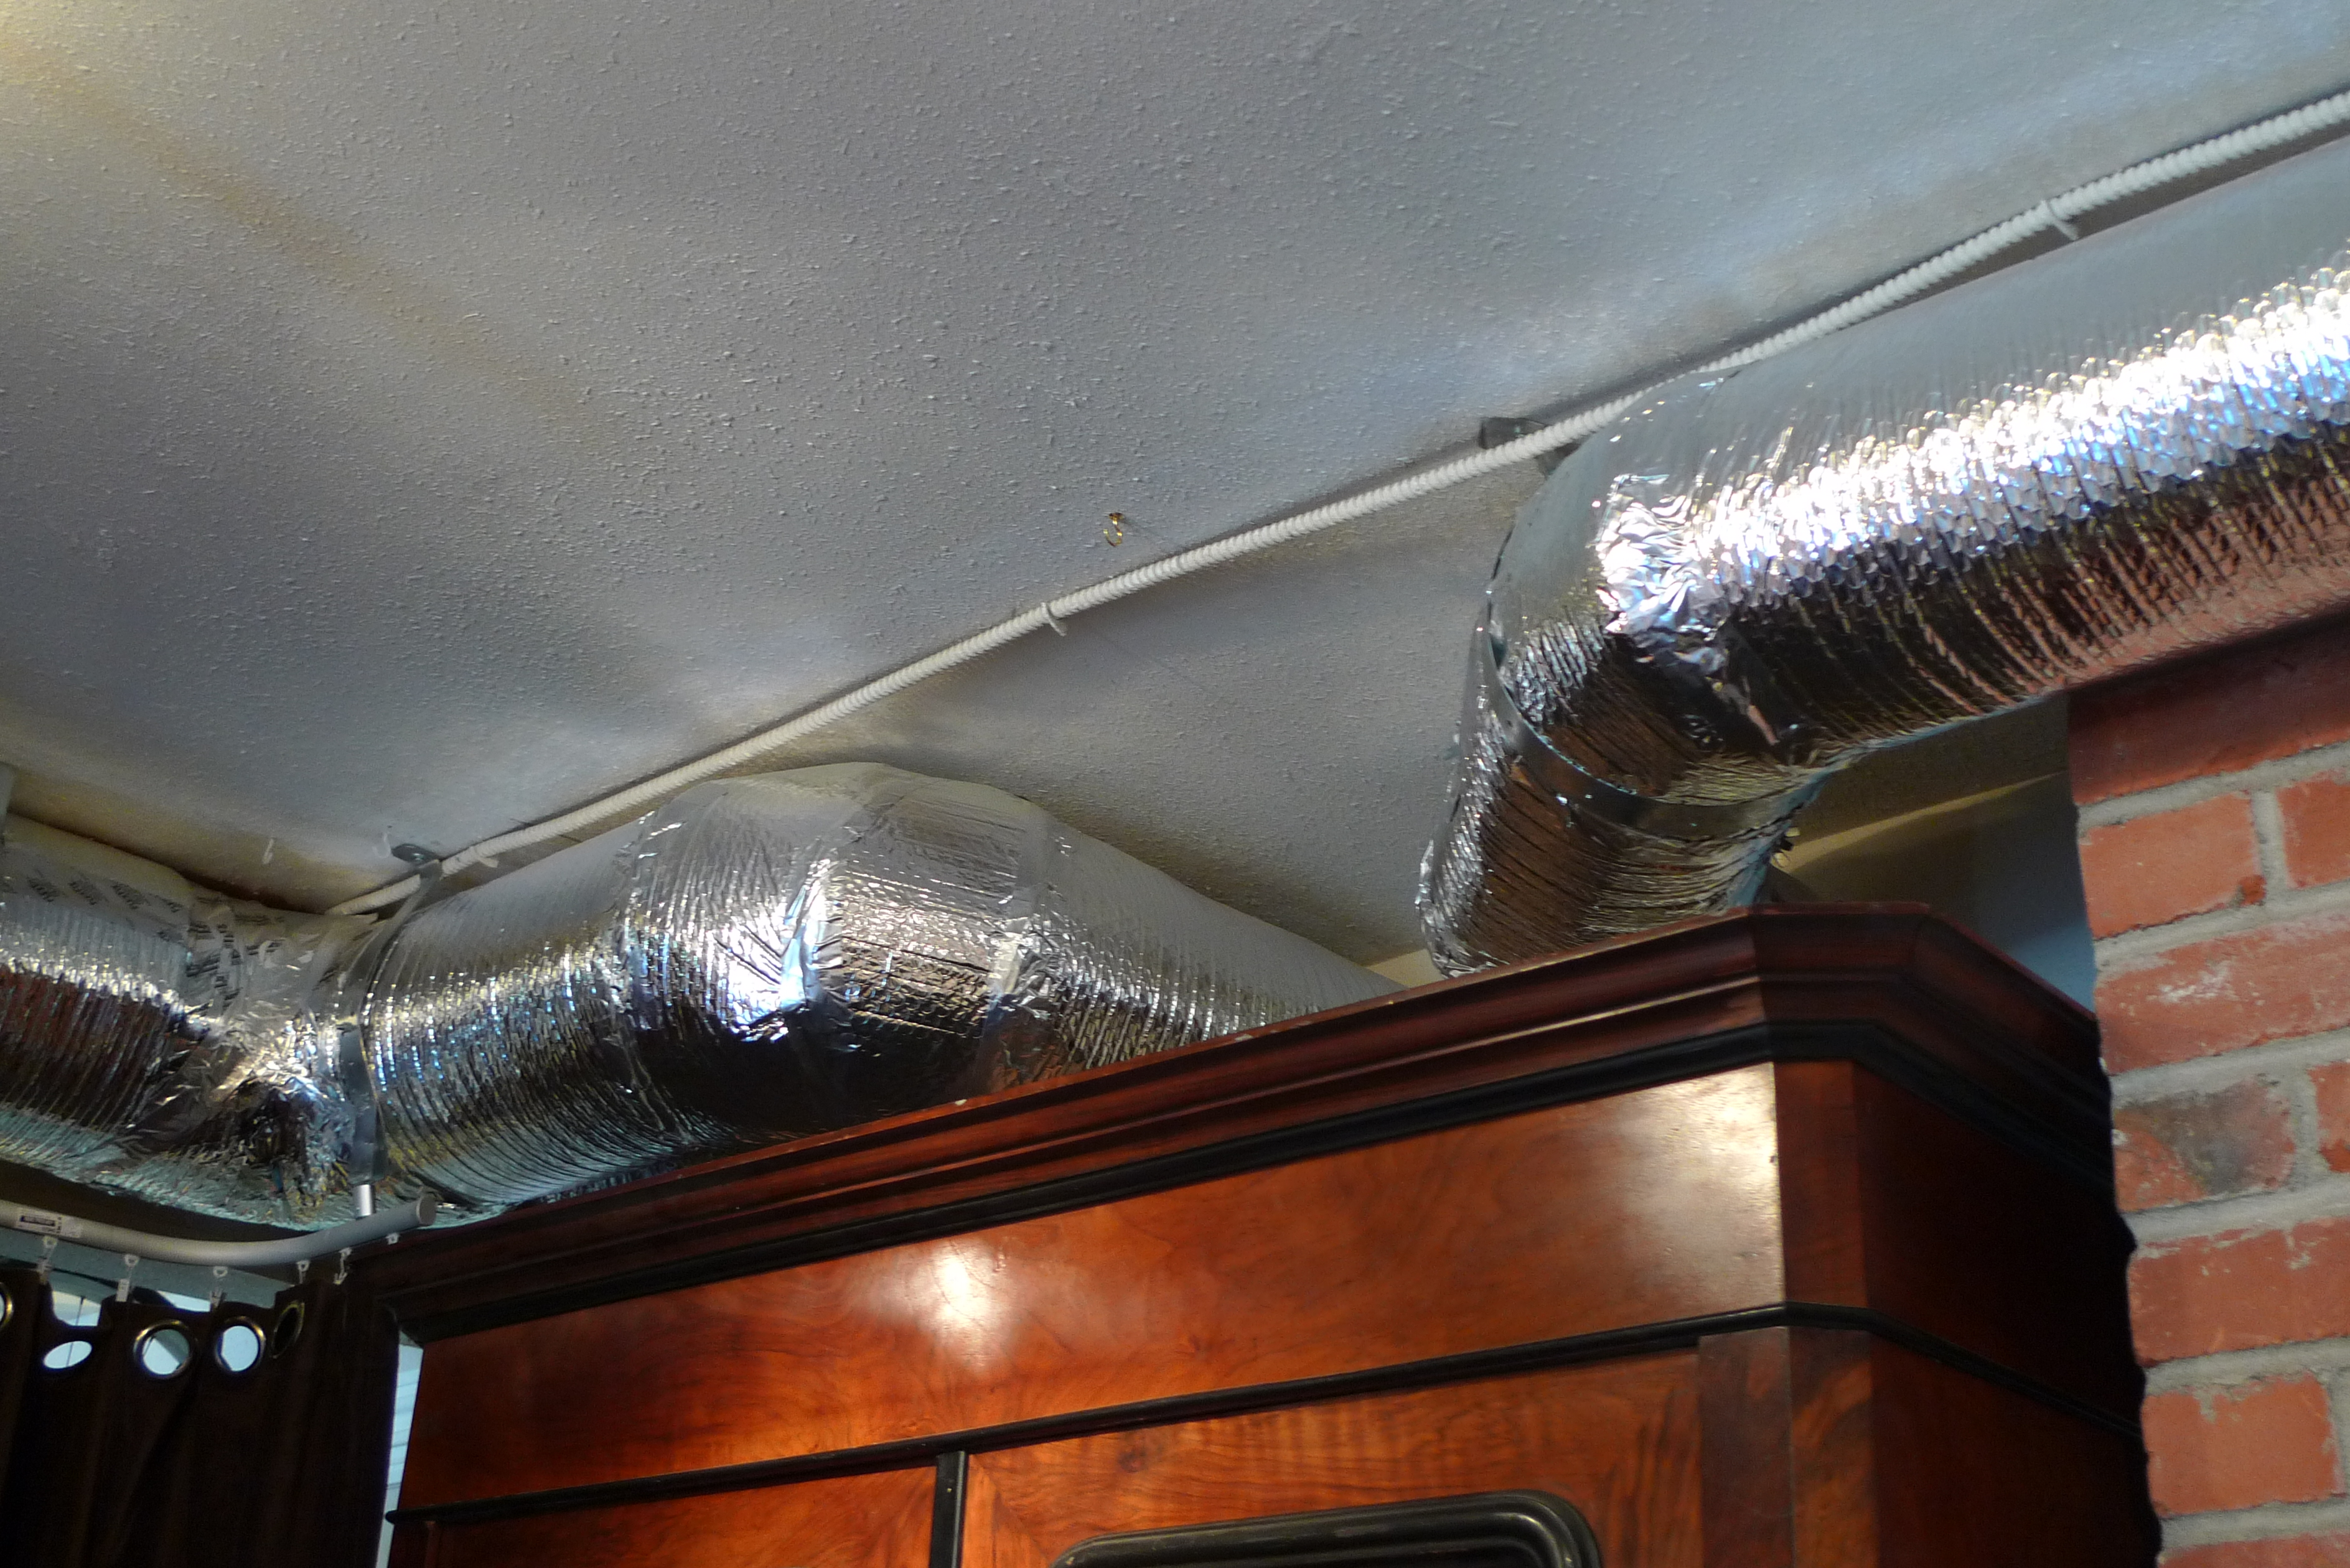 #B24A19 Garage/ Waiting Room Project. Seam 2 Rip Best 3573 Heating Duct Covers photos with 3776x2520 px on helpvideos.info - Air Conditioners, Air Coolers and more